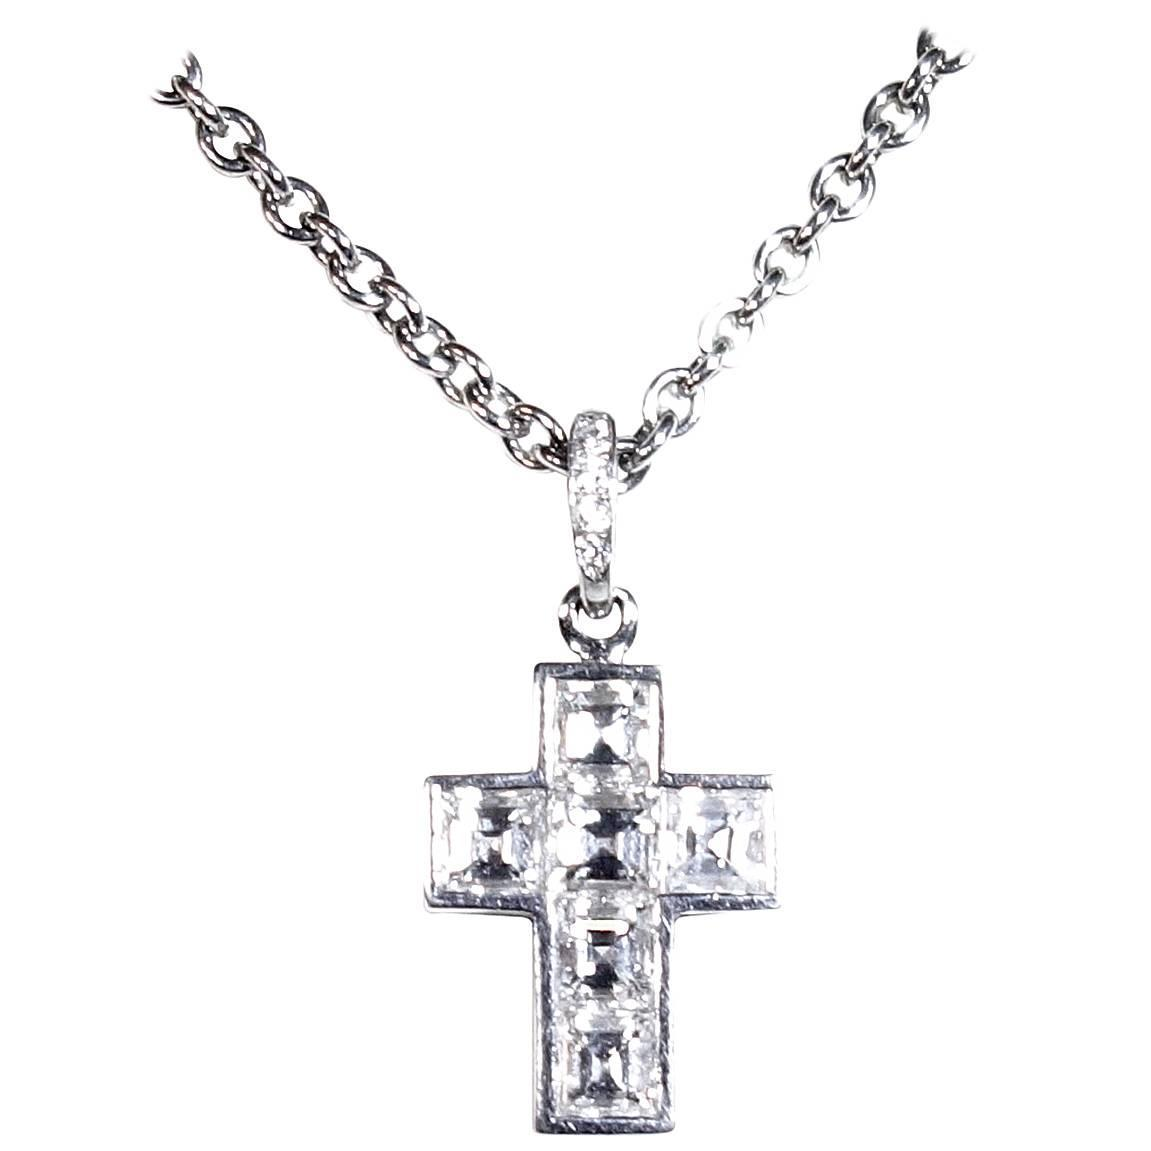 Cartier drop necklaces 26 for sale at 1stdibs cartier diamond platinum cross necklace aloadofball Images